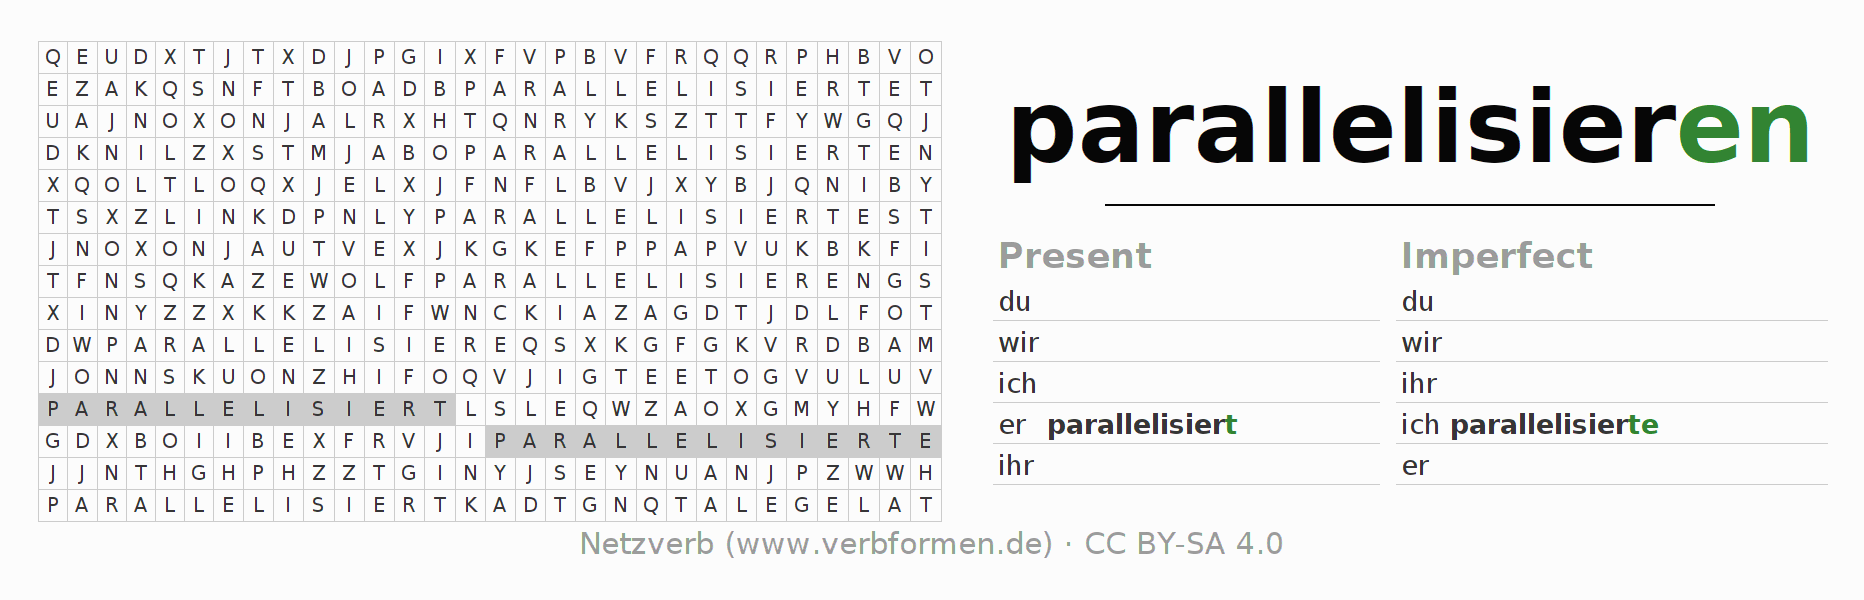 Word search puzzle for the conjugation of the verb parallelisieren